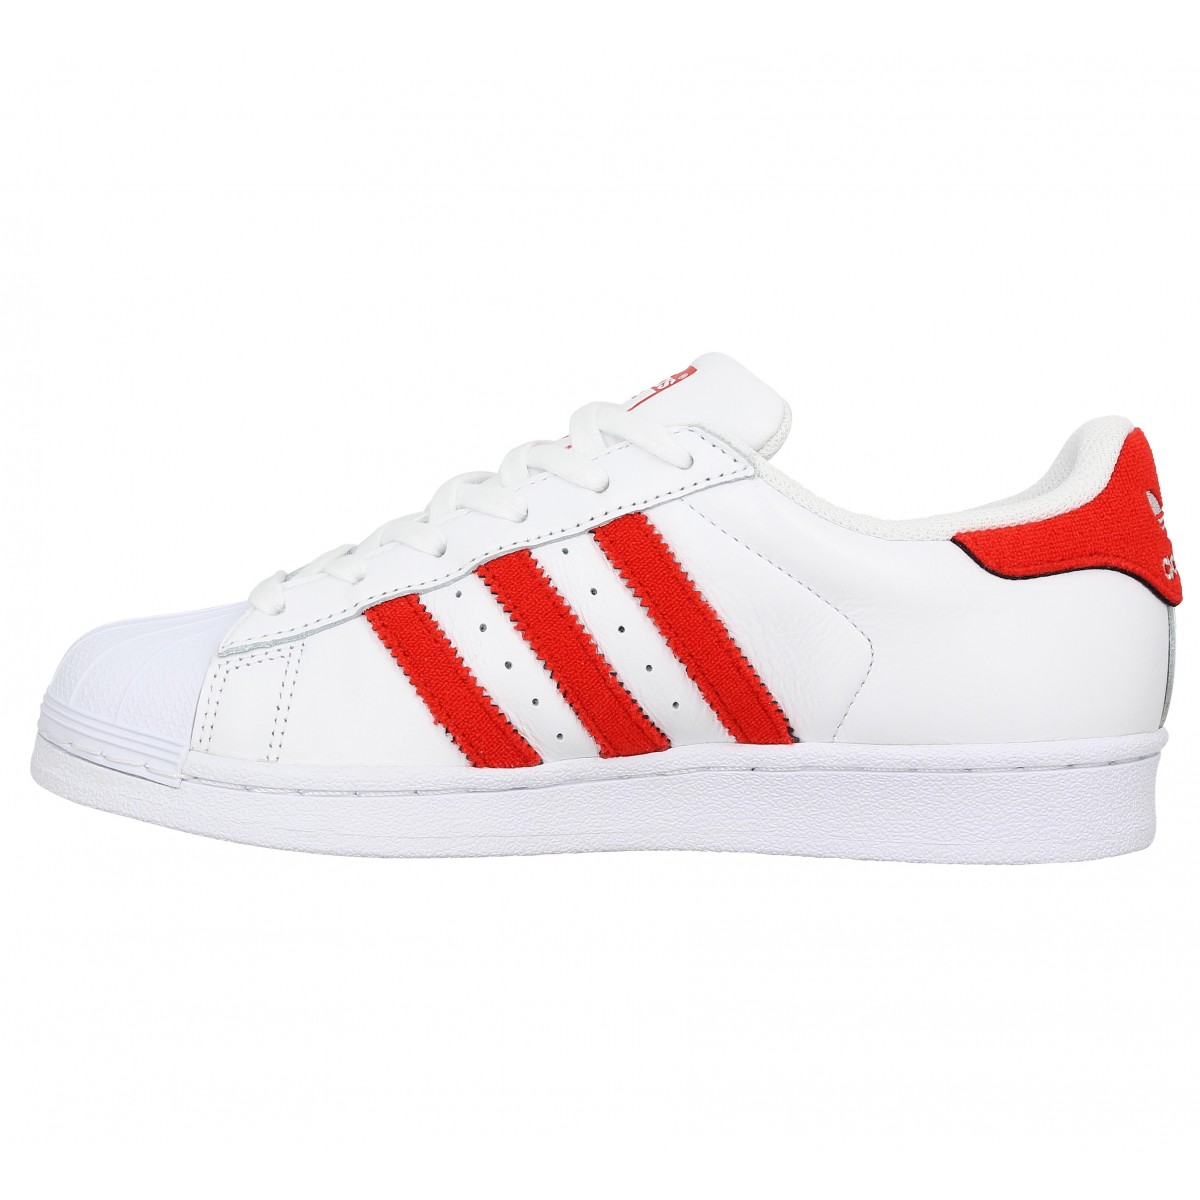 adidas superstar cuir rouge